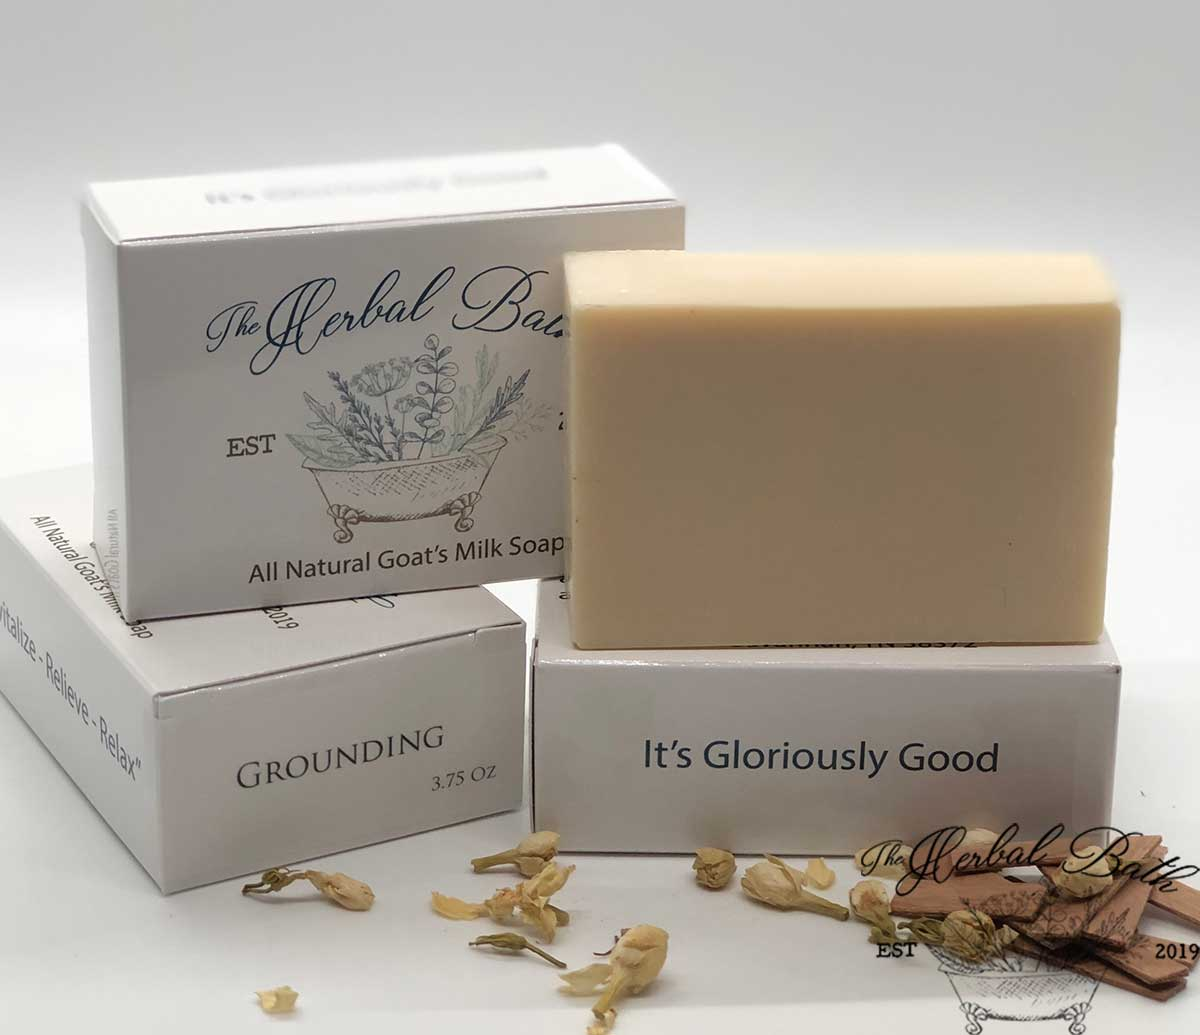 Grounding Signature Blend-Goat's milk soap